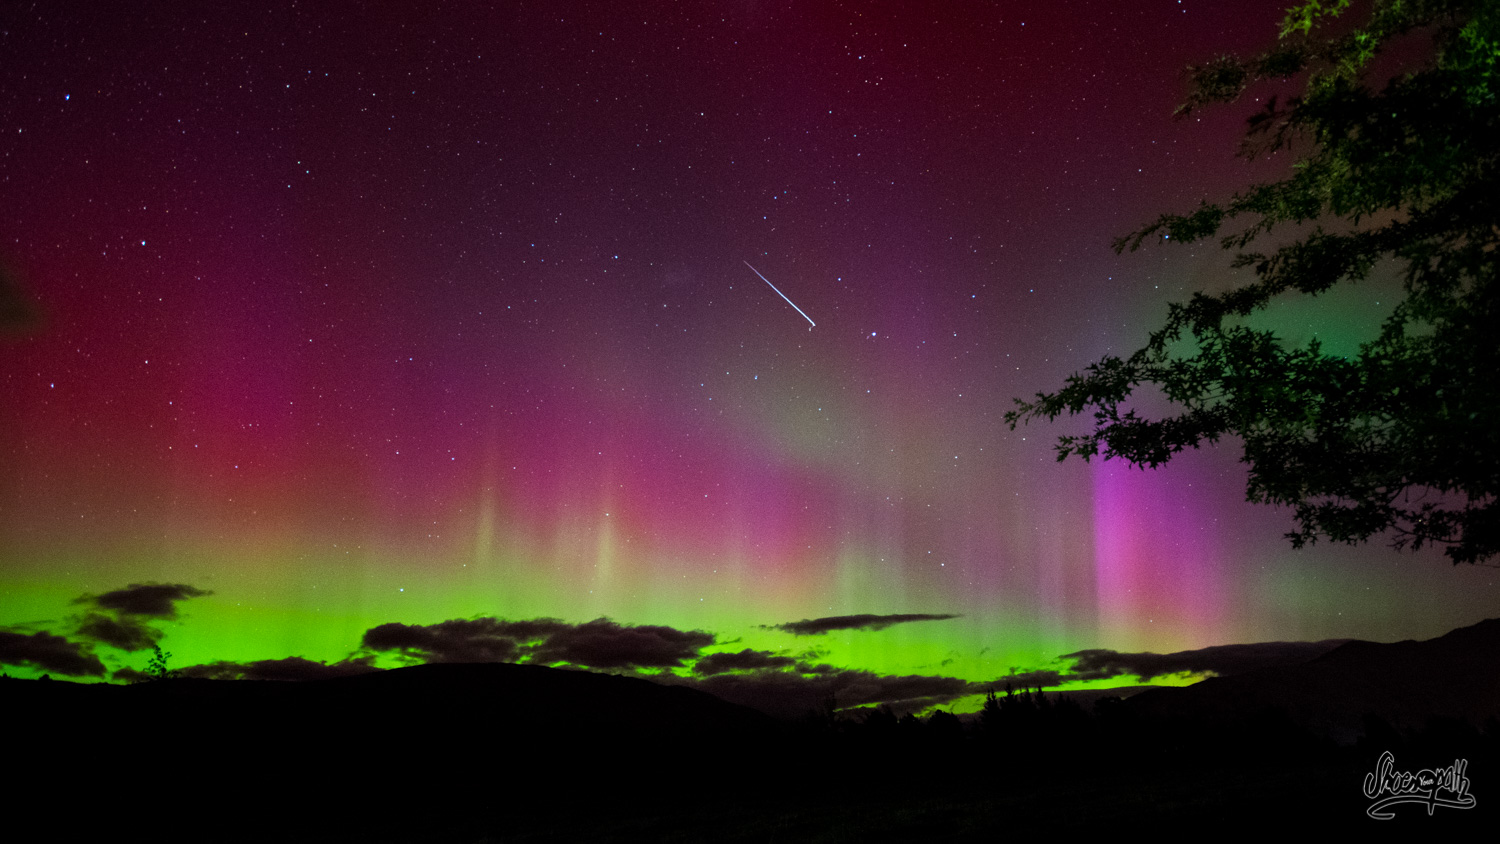 Amazing show from Mother Nature that night in Wanaka : our 1st aurora australis !